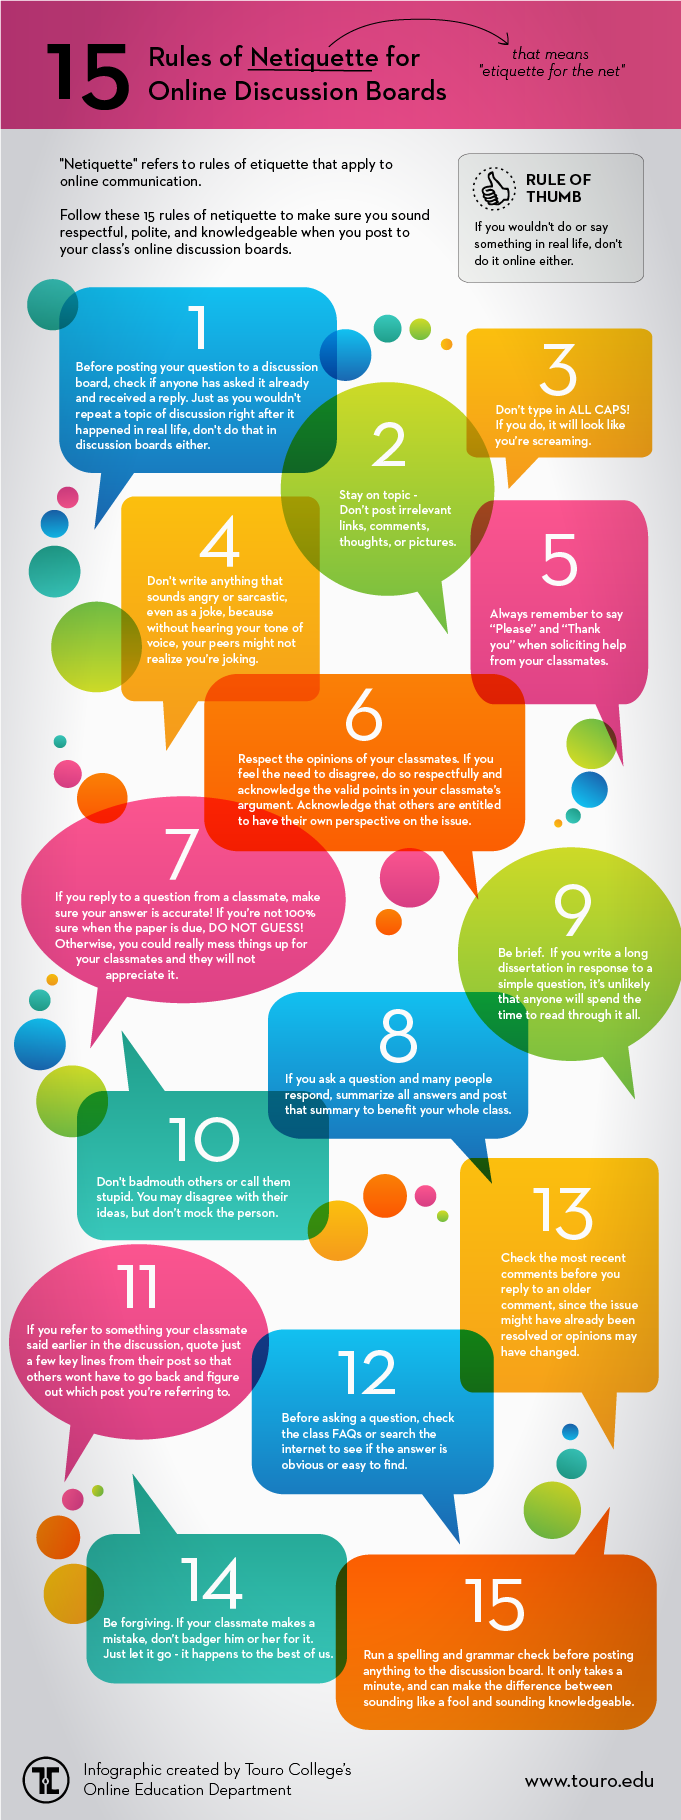 15 Rules Of Netiquette For Online Discussion Boards Infographic E Learning Infographics Netiquette Online Etiquette Online Education